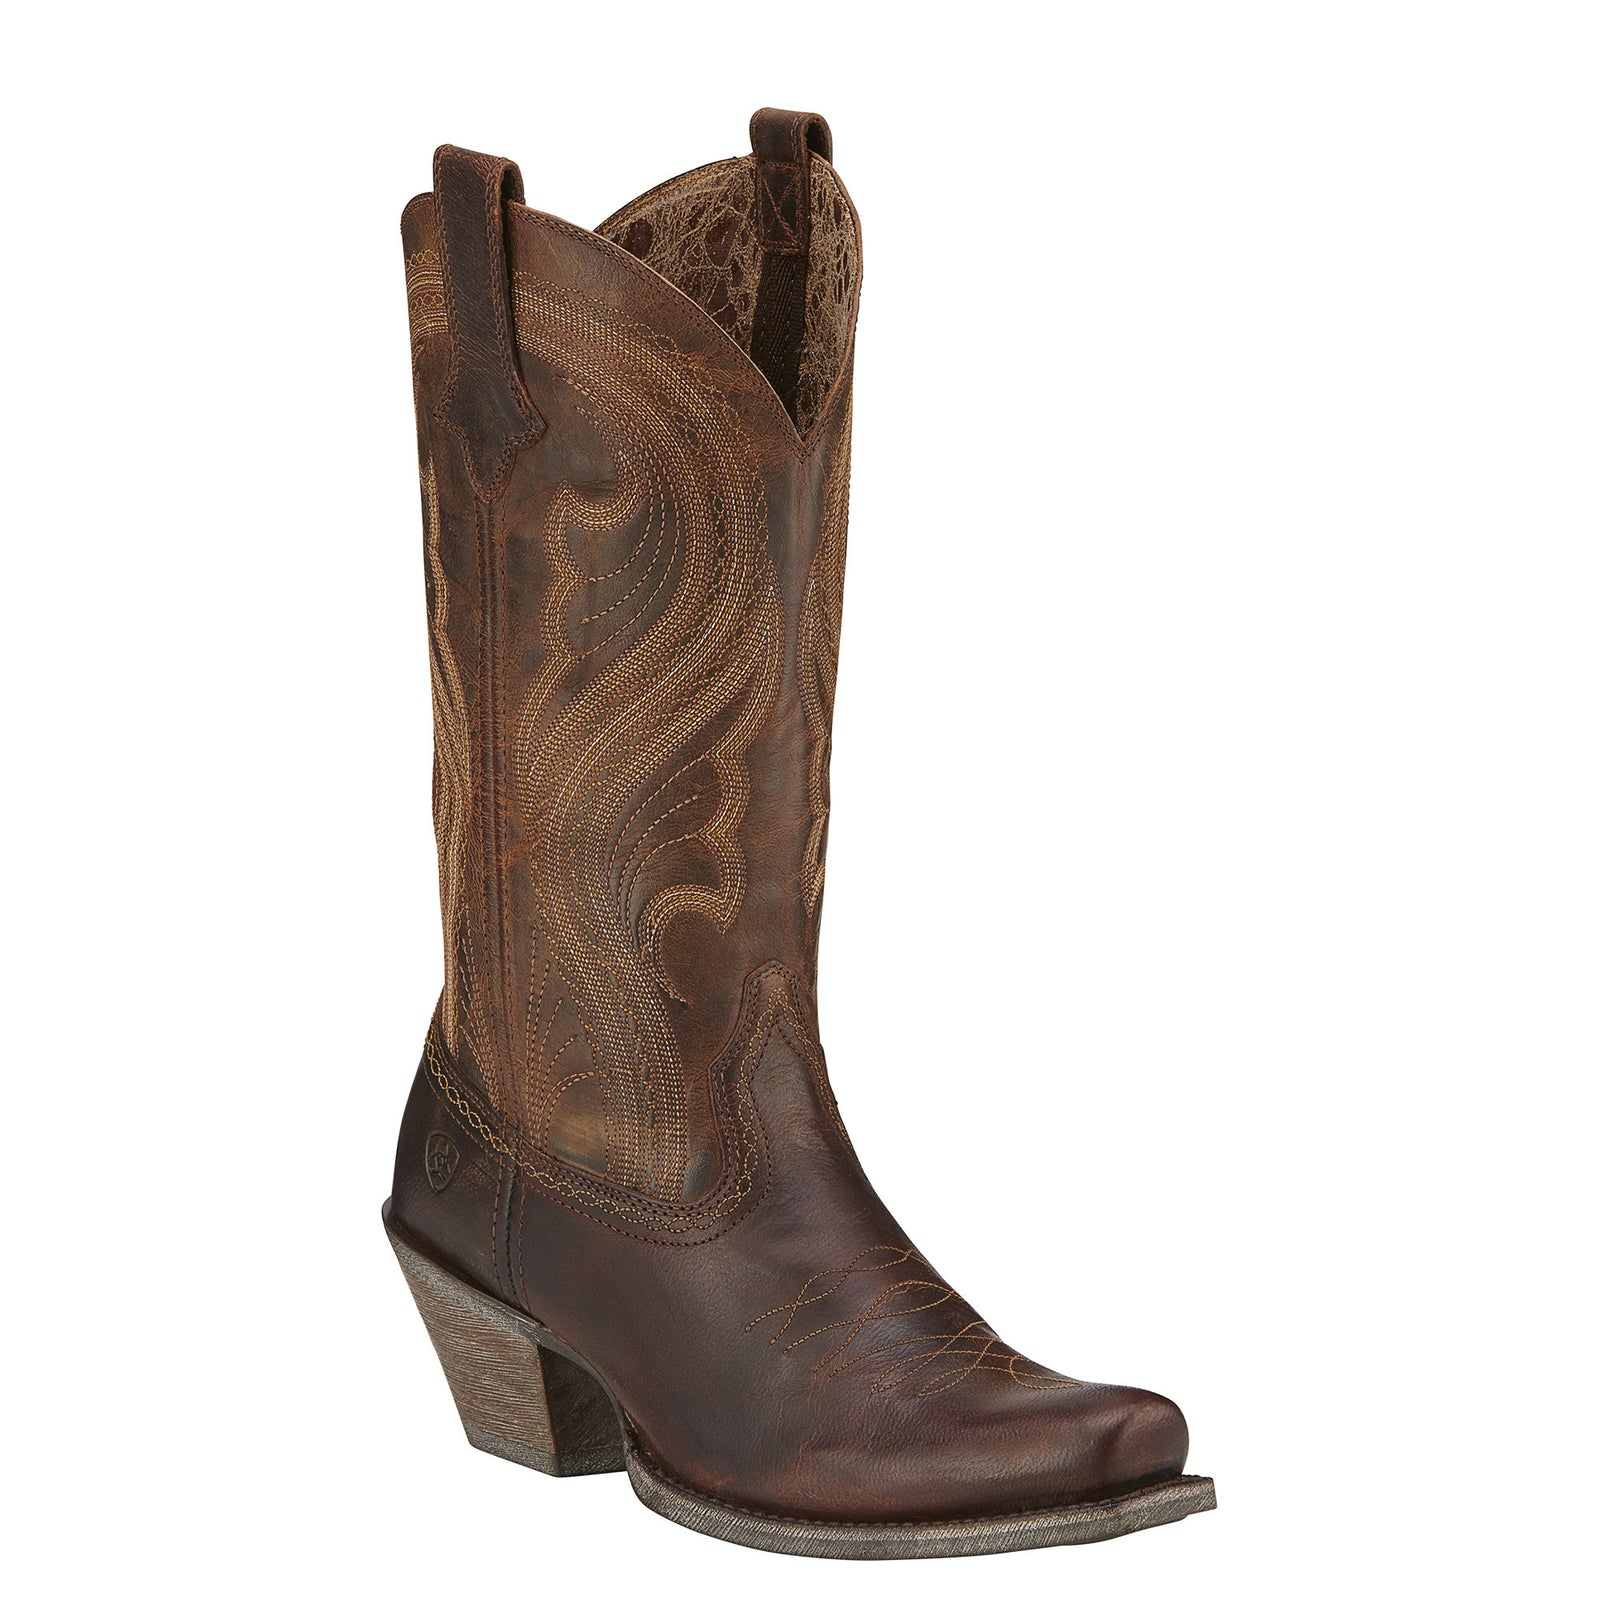 Ariat Women's Lively Sassy Brown Western Fashion Boots - VaqueroBoots.com - 1